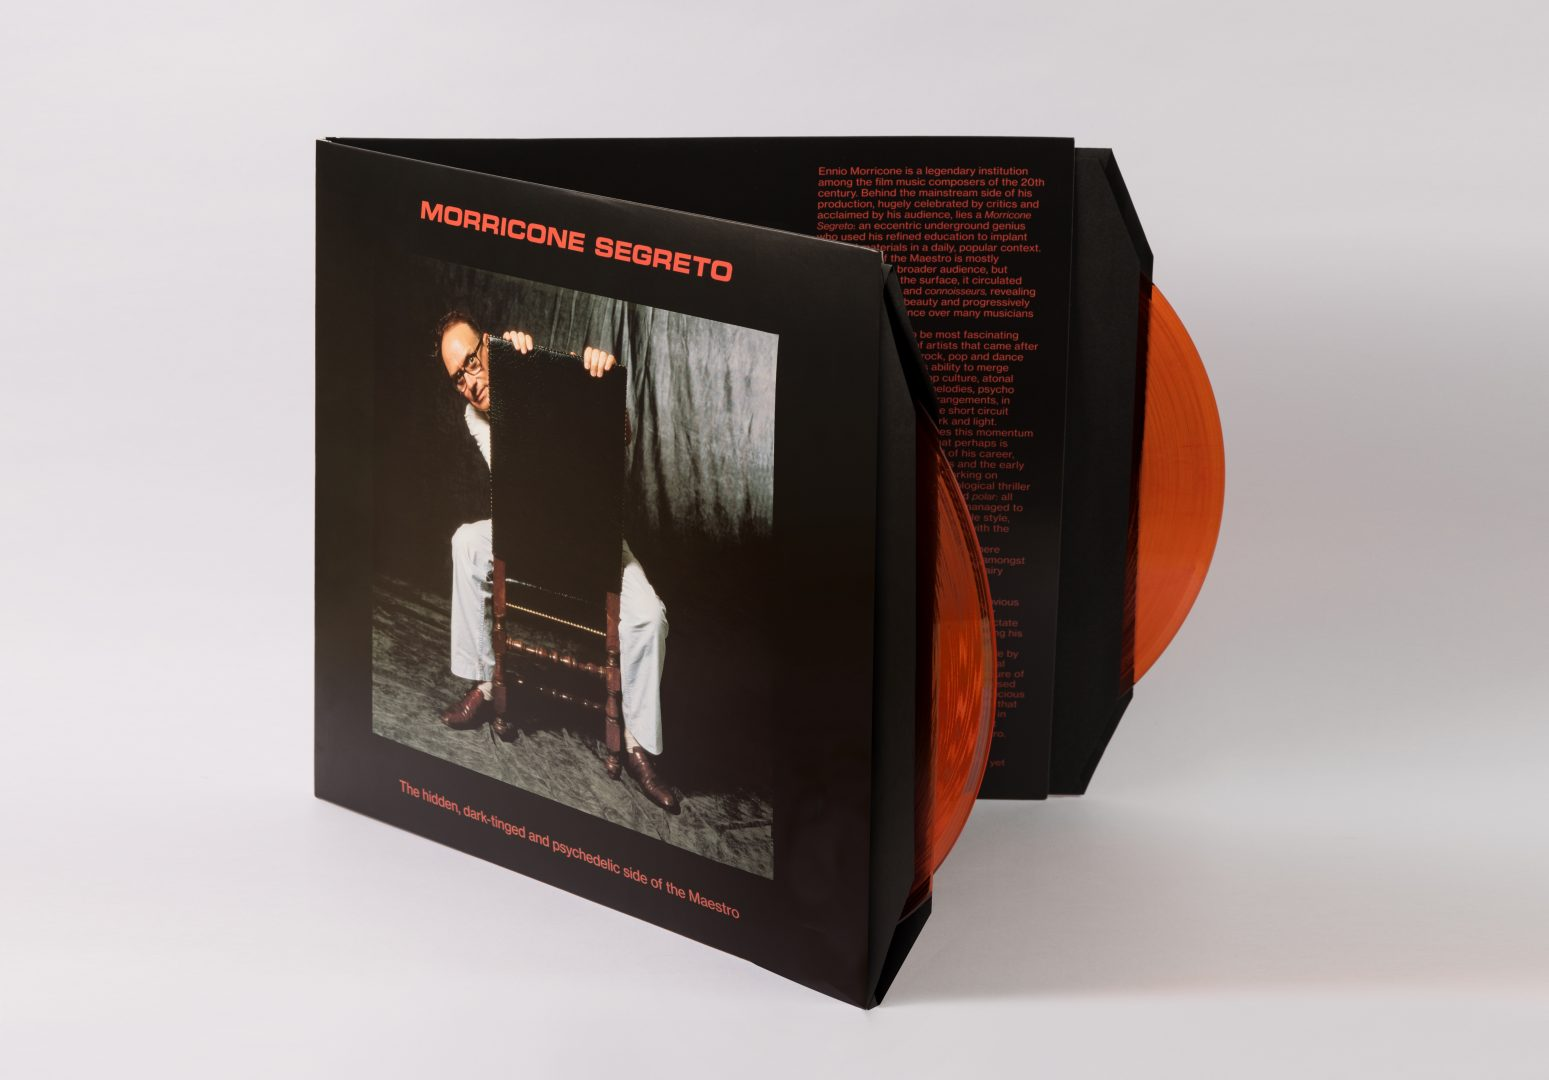 Morricone Segreto, Double LP, CD, Collectors Edition. Photography by Luciano Viti's Archive